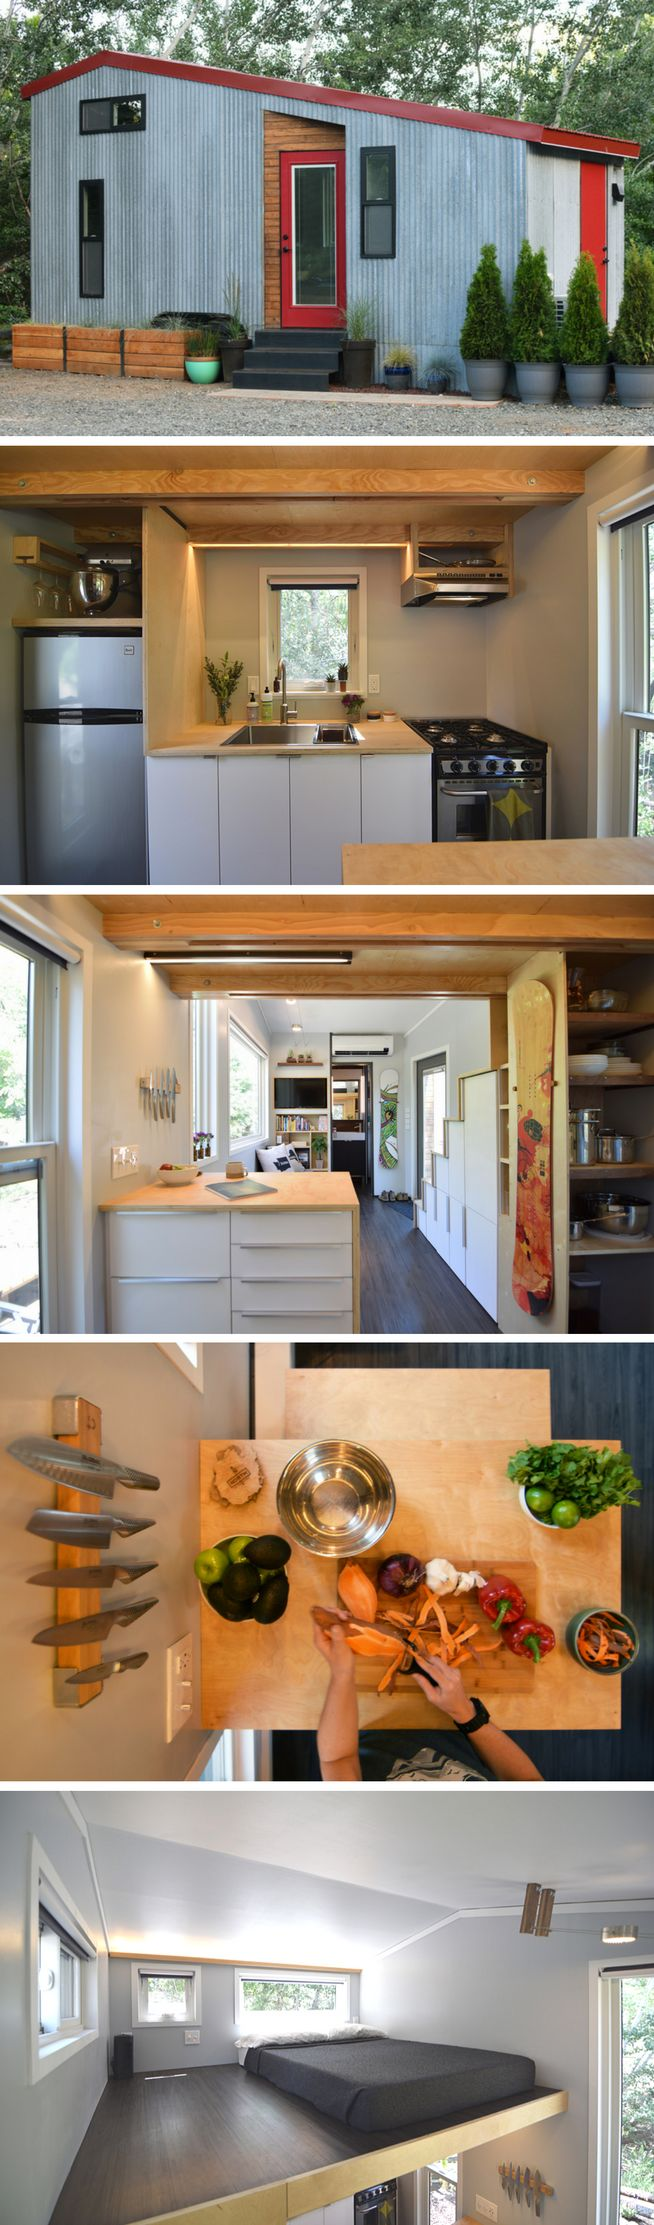 204 sq ft tiny house ♡